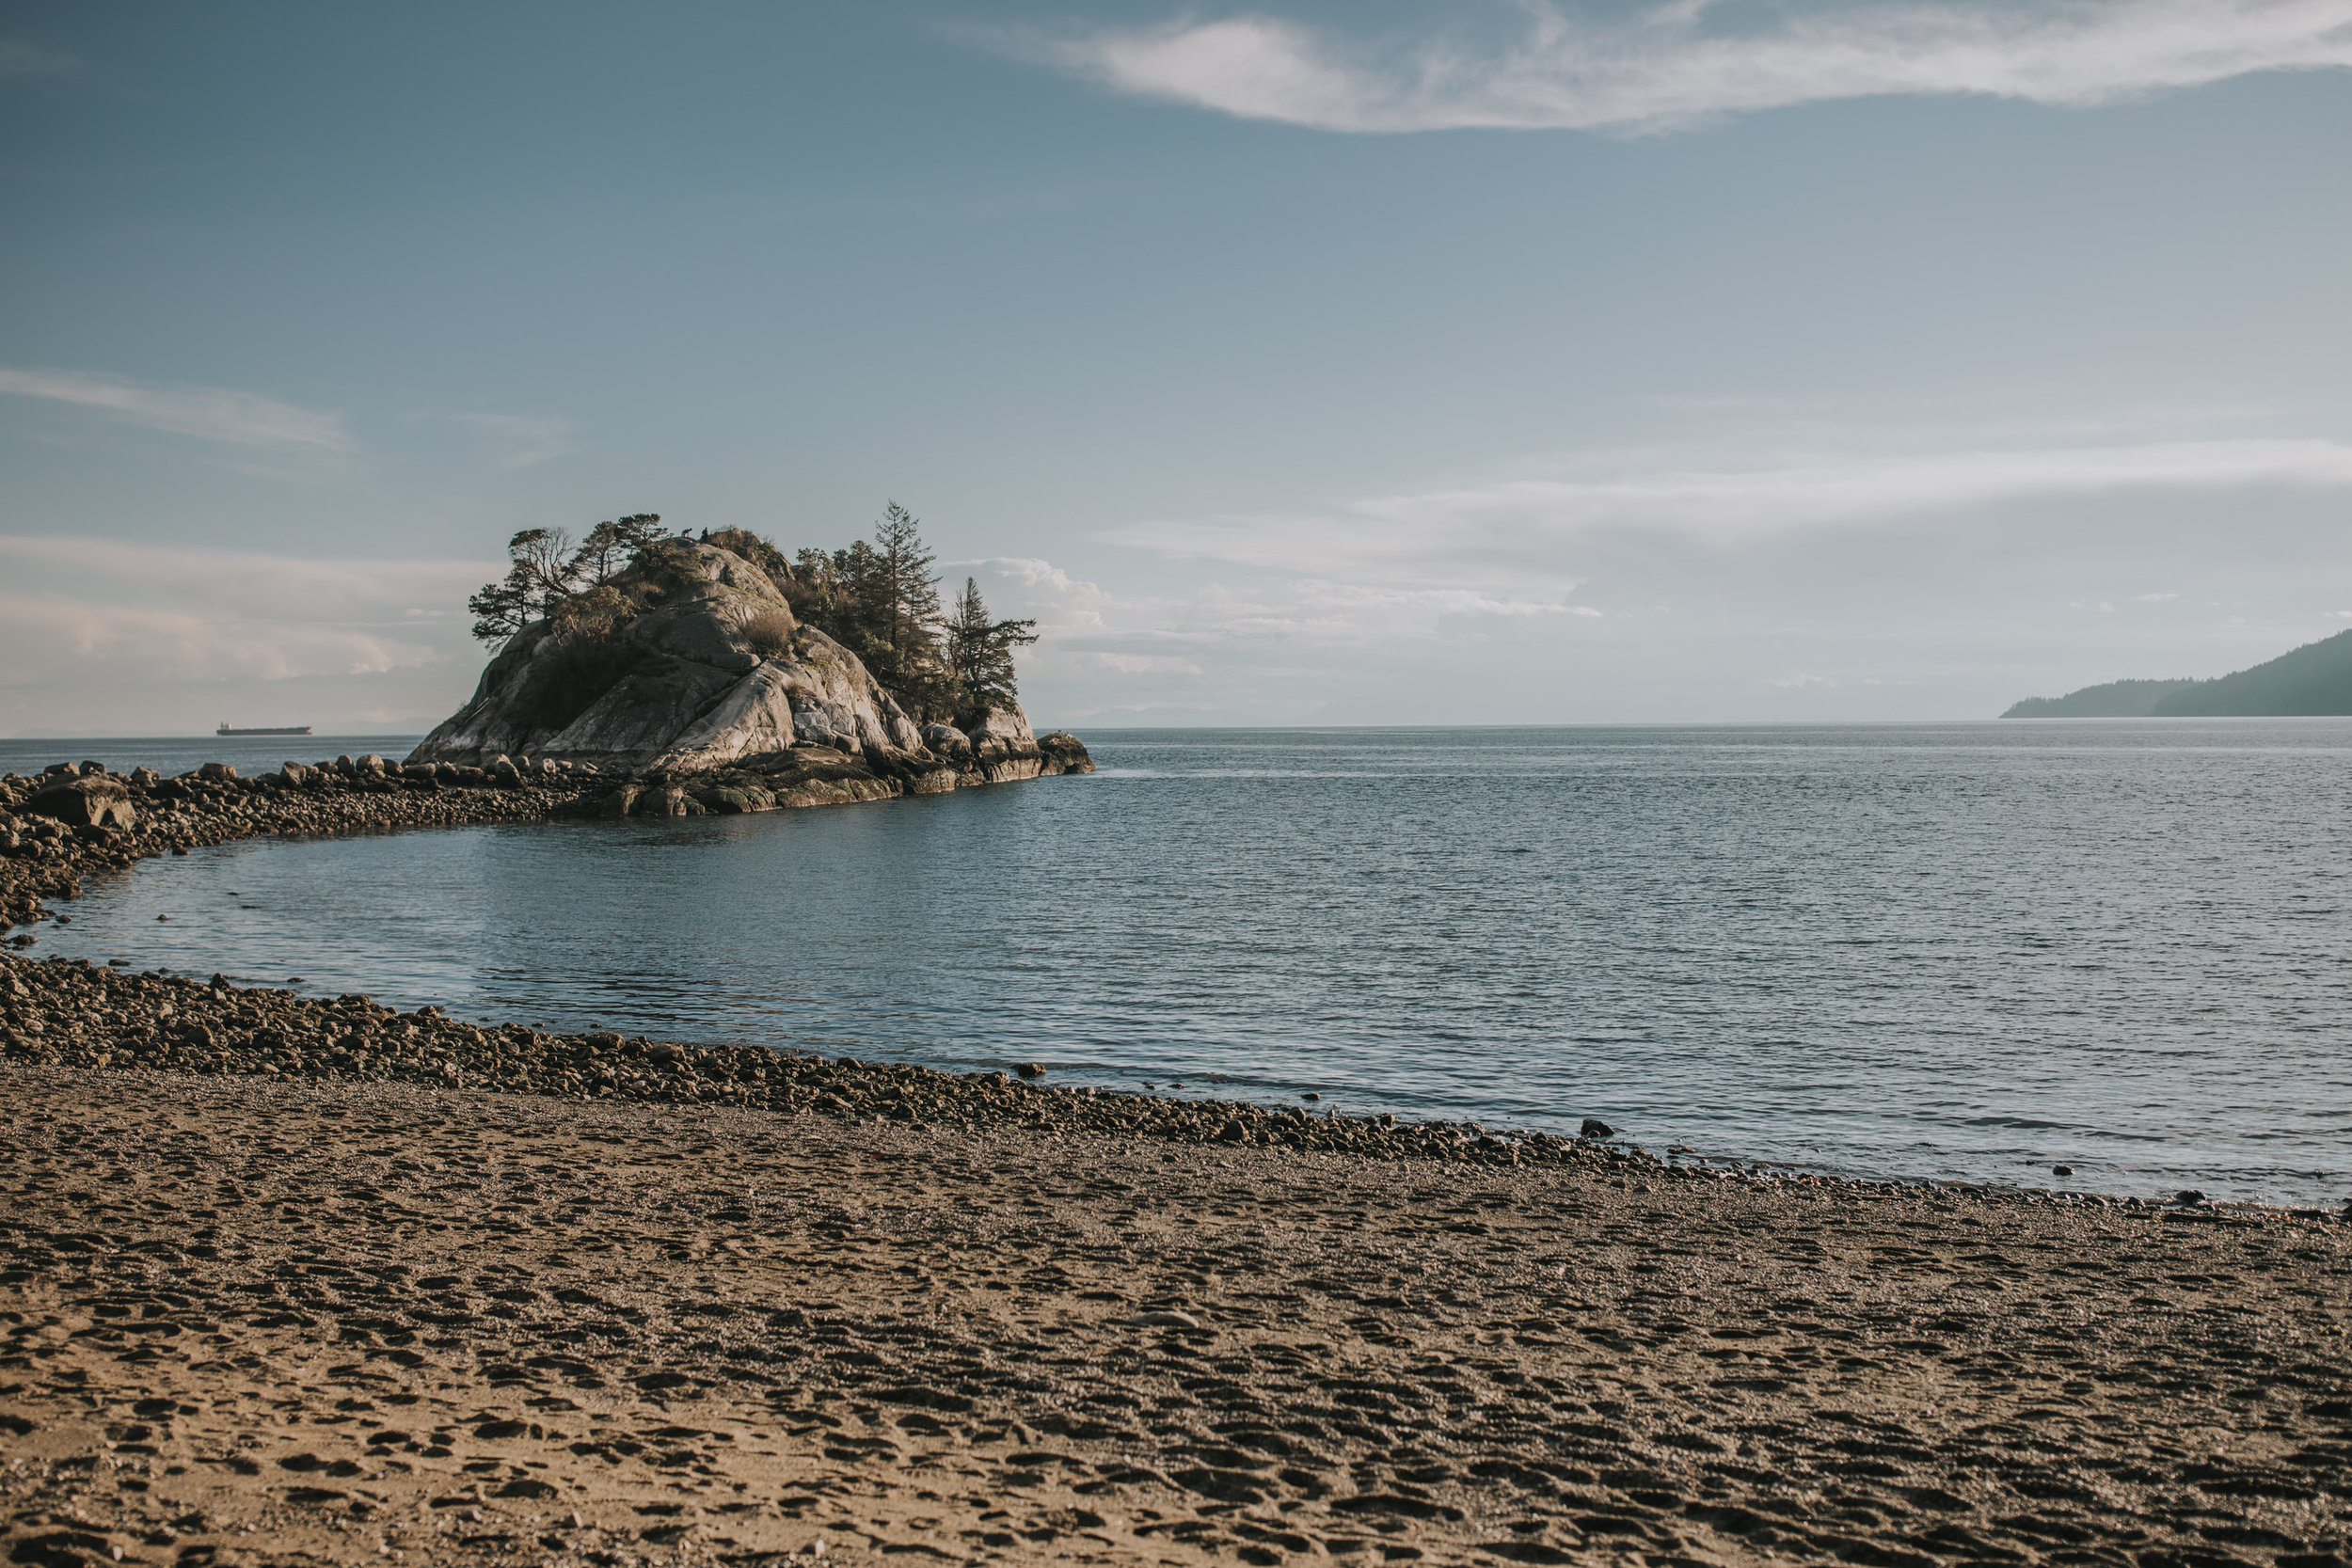 Whytecliff Park Engagement Photos - Vancouver Wedding Photographer - Jennifer Picard Photography004-1.JPG